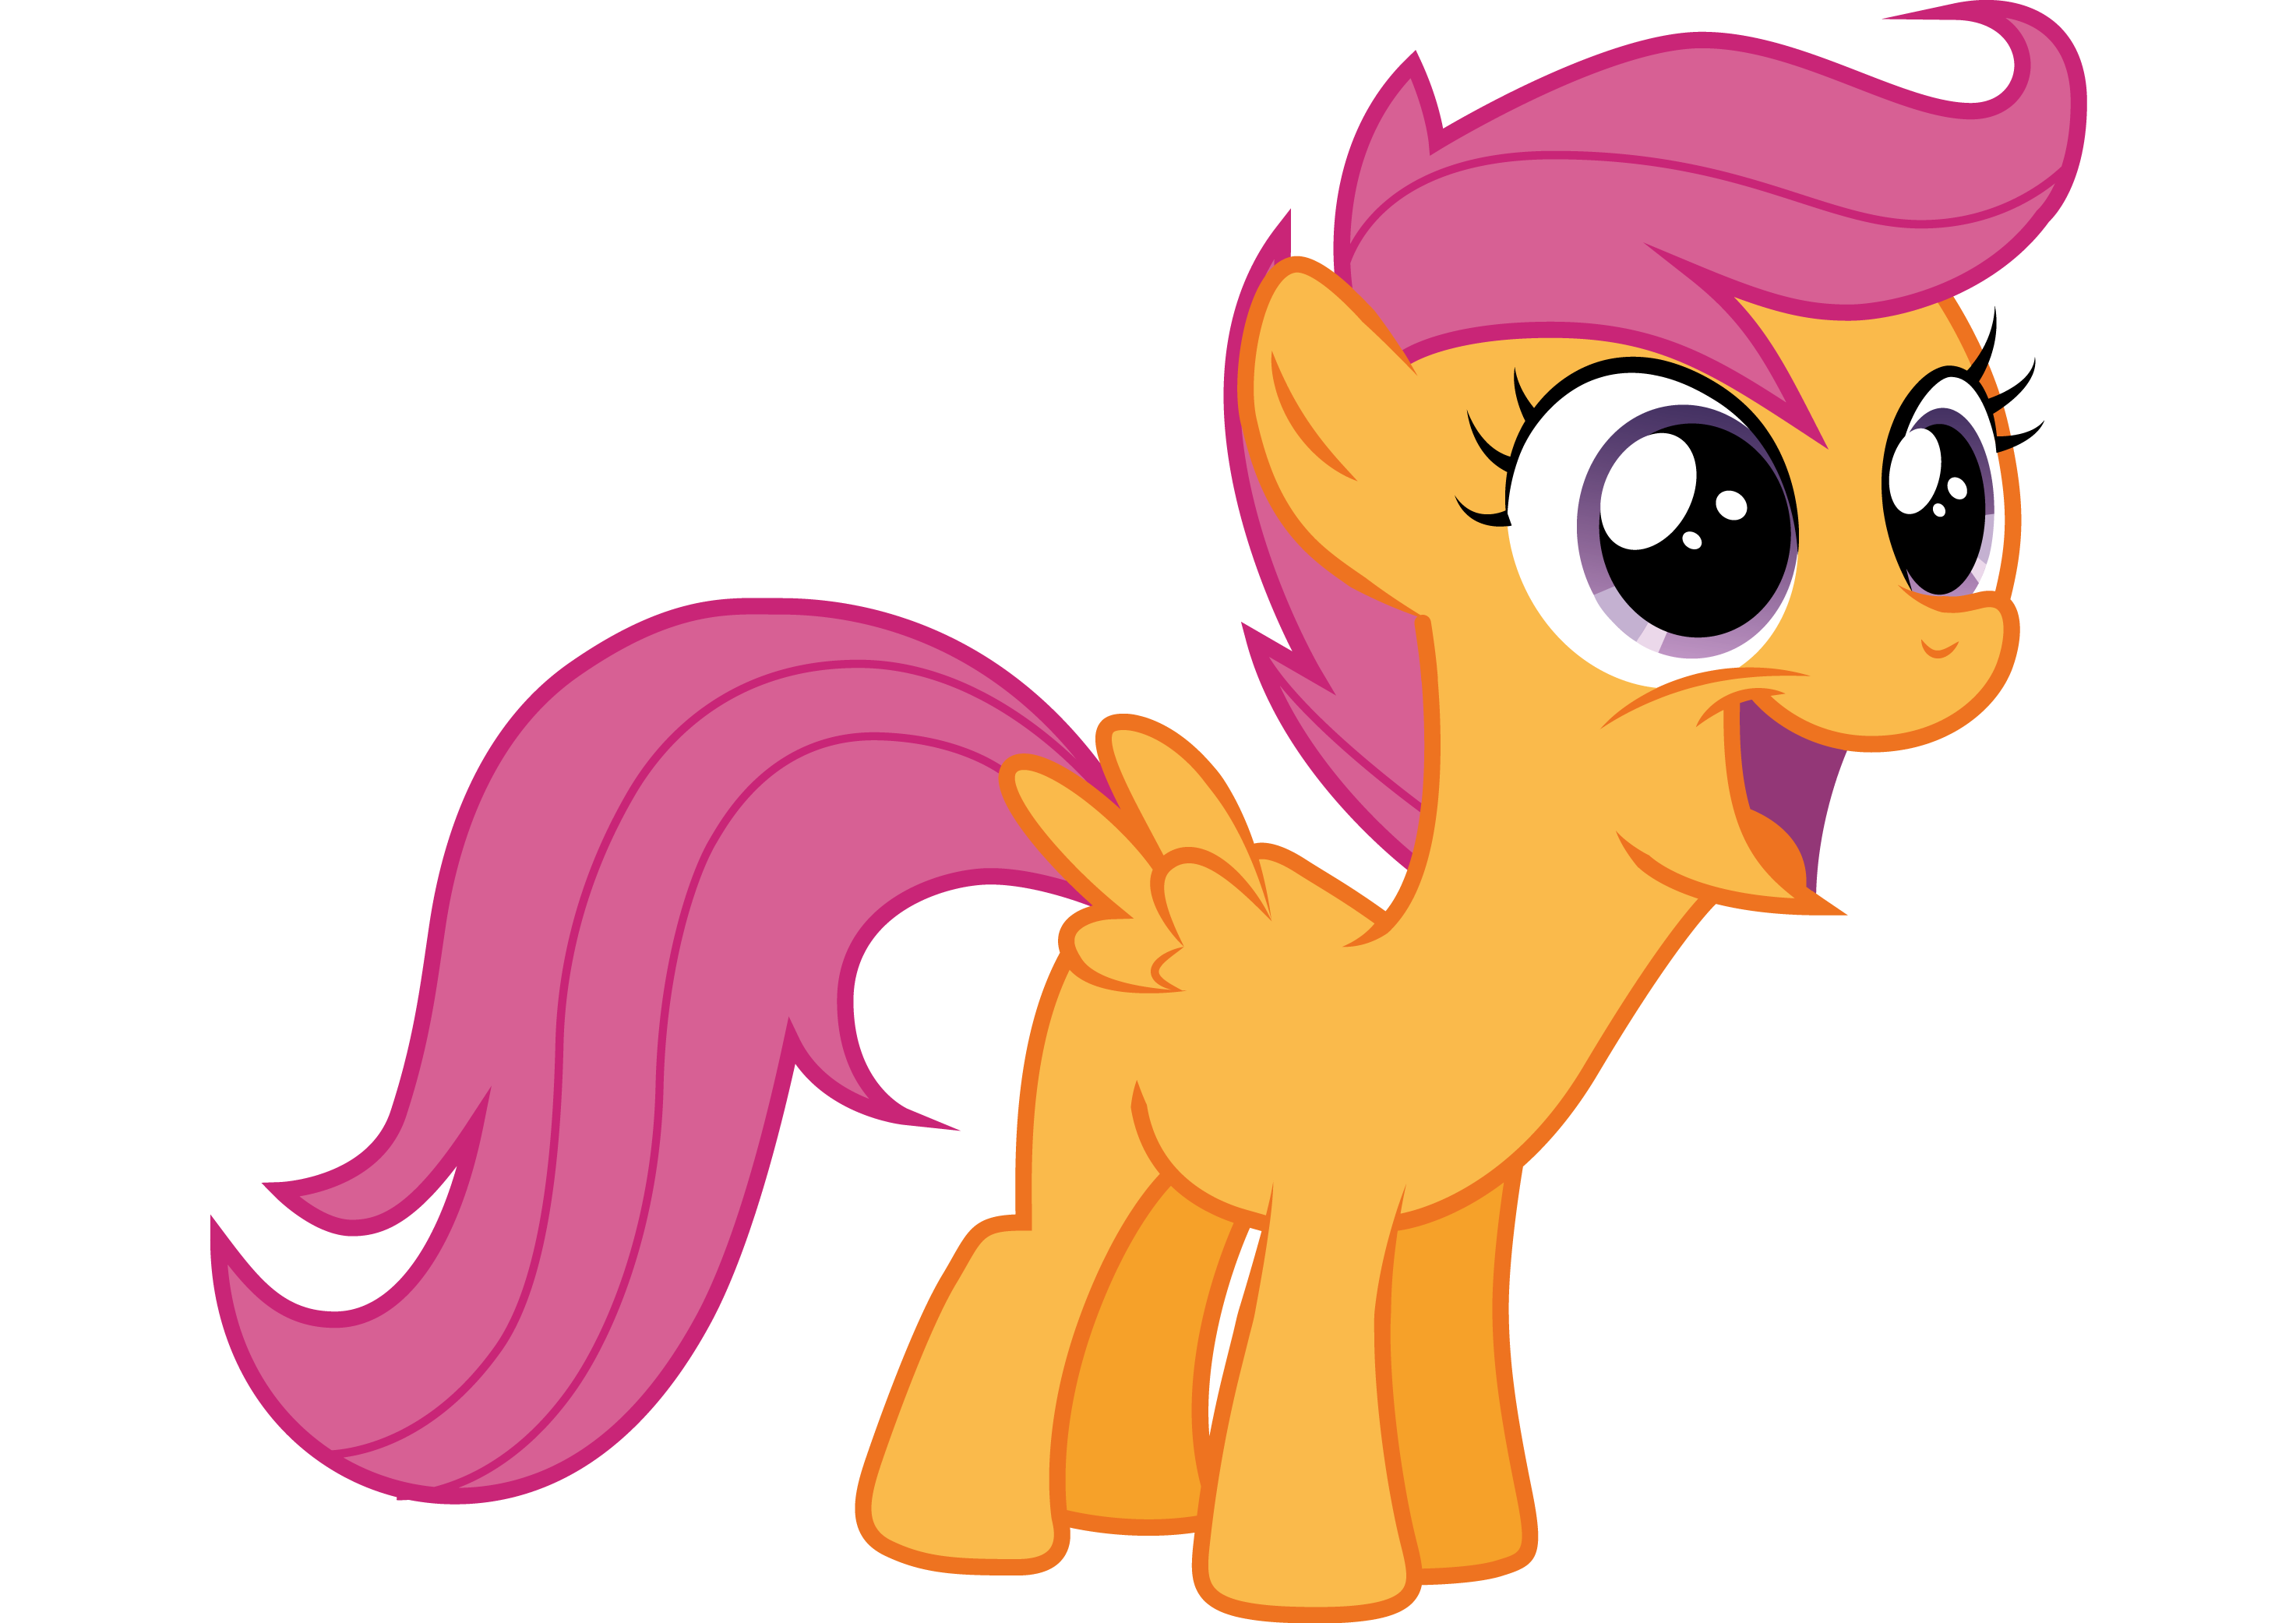 Scootaloo Is Happy By Boem777 On Deviantart Good vector, the only thing i can really say about is it would look so much better on a white background. scootaloo is happy by boem777 on